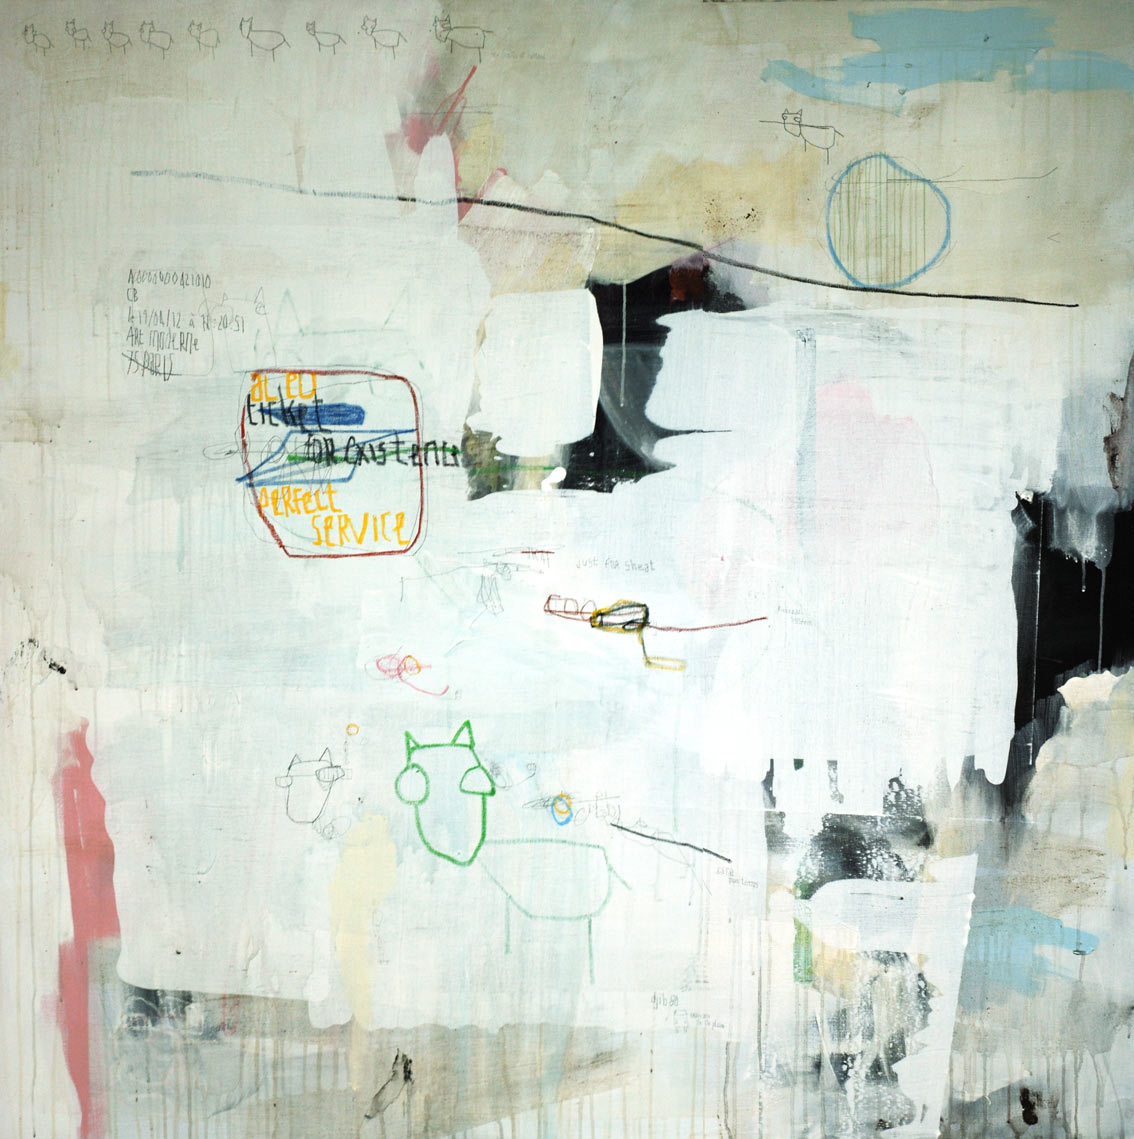 acrylic, pens, oil stick and tea on canvas _ 150 x 150 cm _ 59 x 59 inch